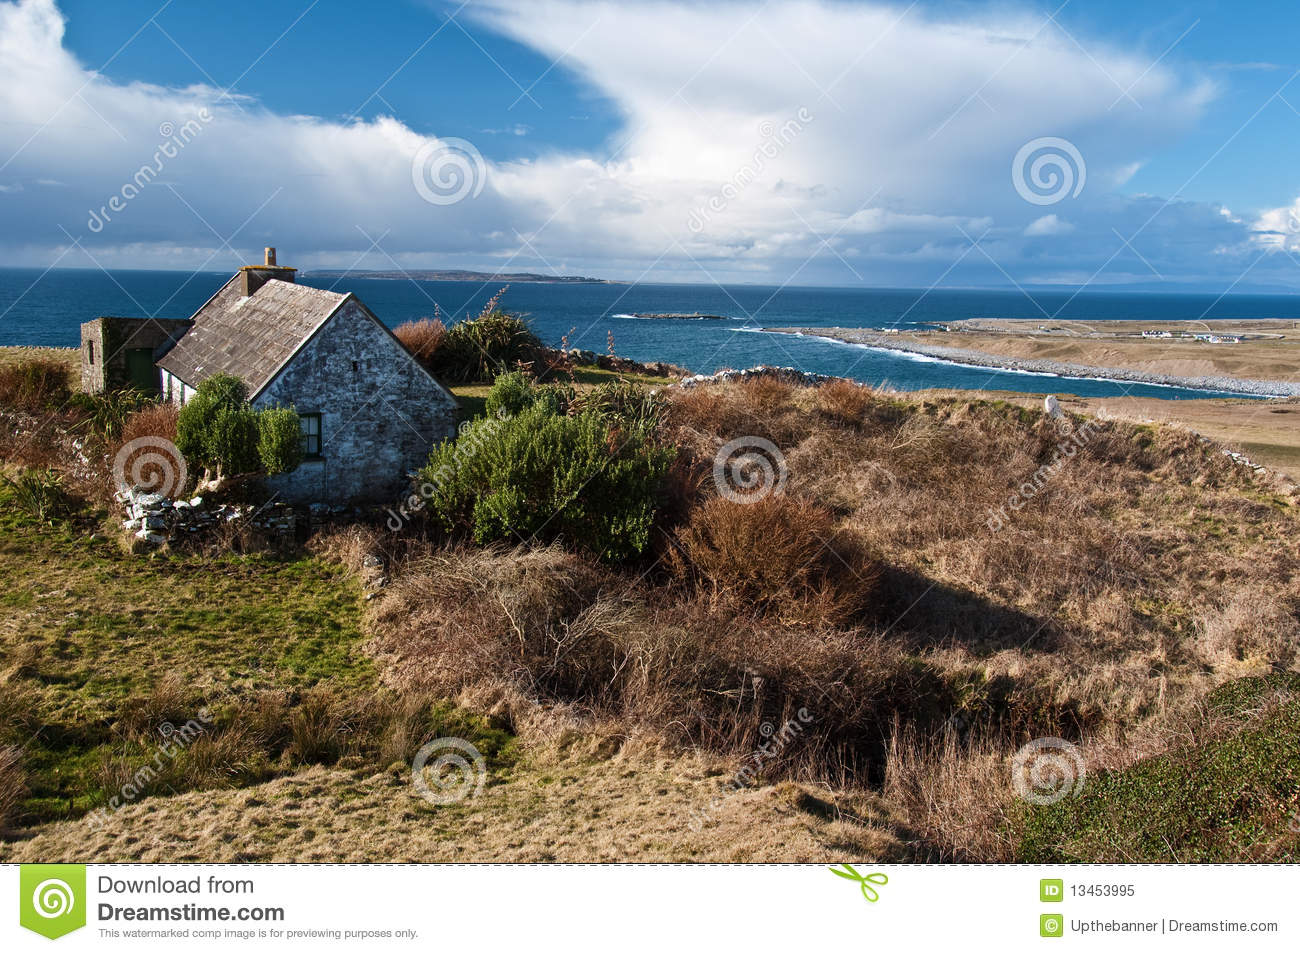 Royalty Free Stock Photo Scenic Irish Landscape Old Irish Cottage Image13453995 on vacation house plans